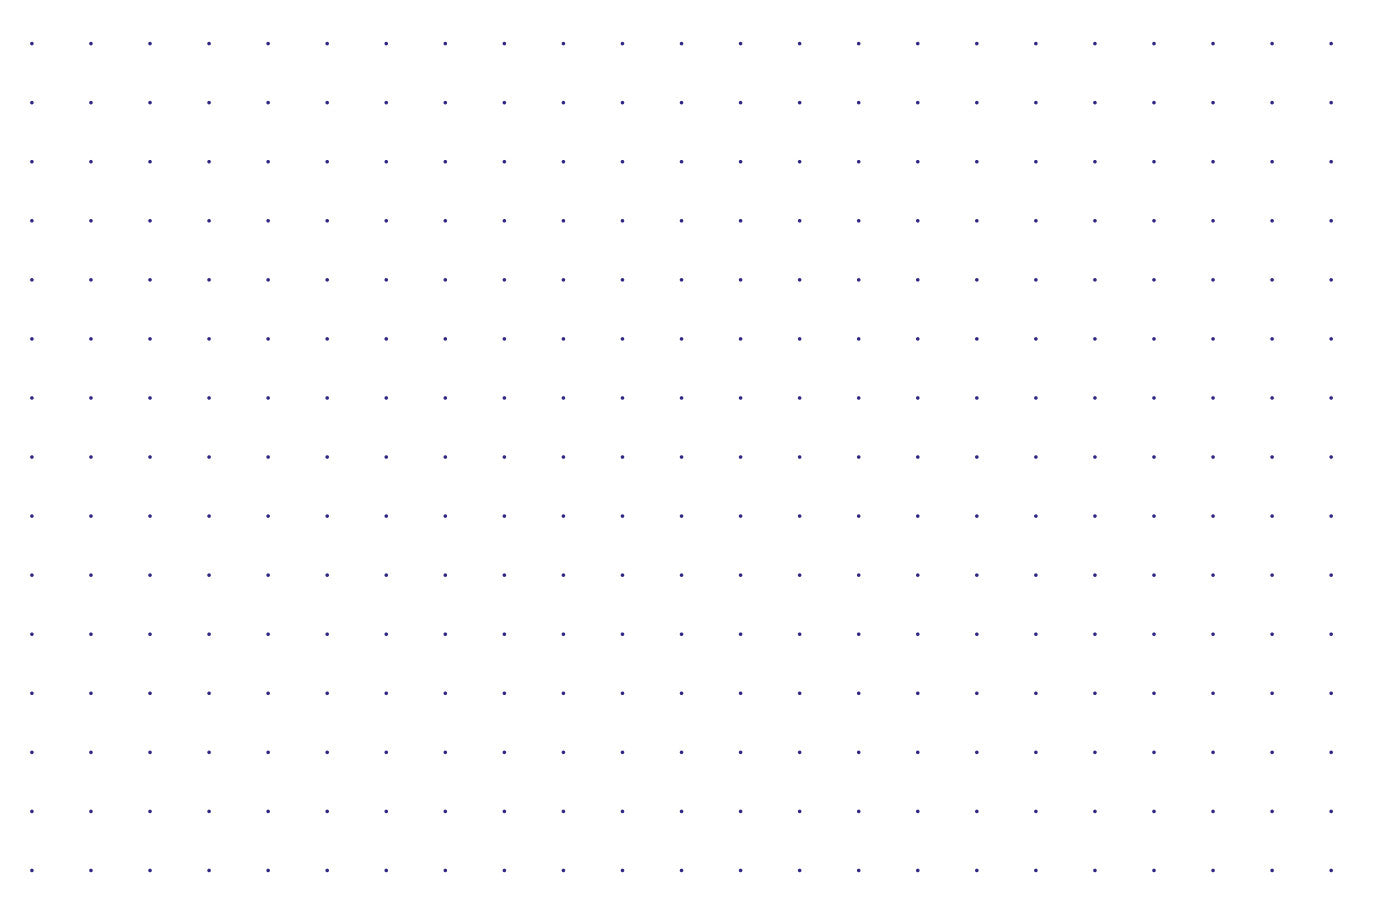 william hannah   5mm dotted grid paper a5 refill  100 pack